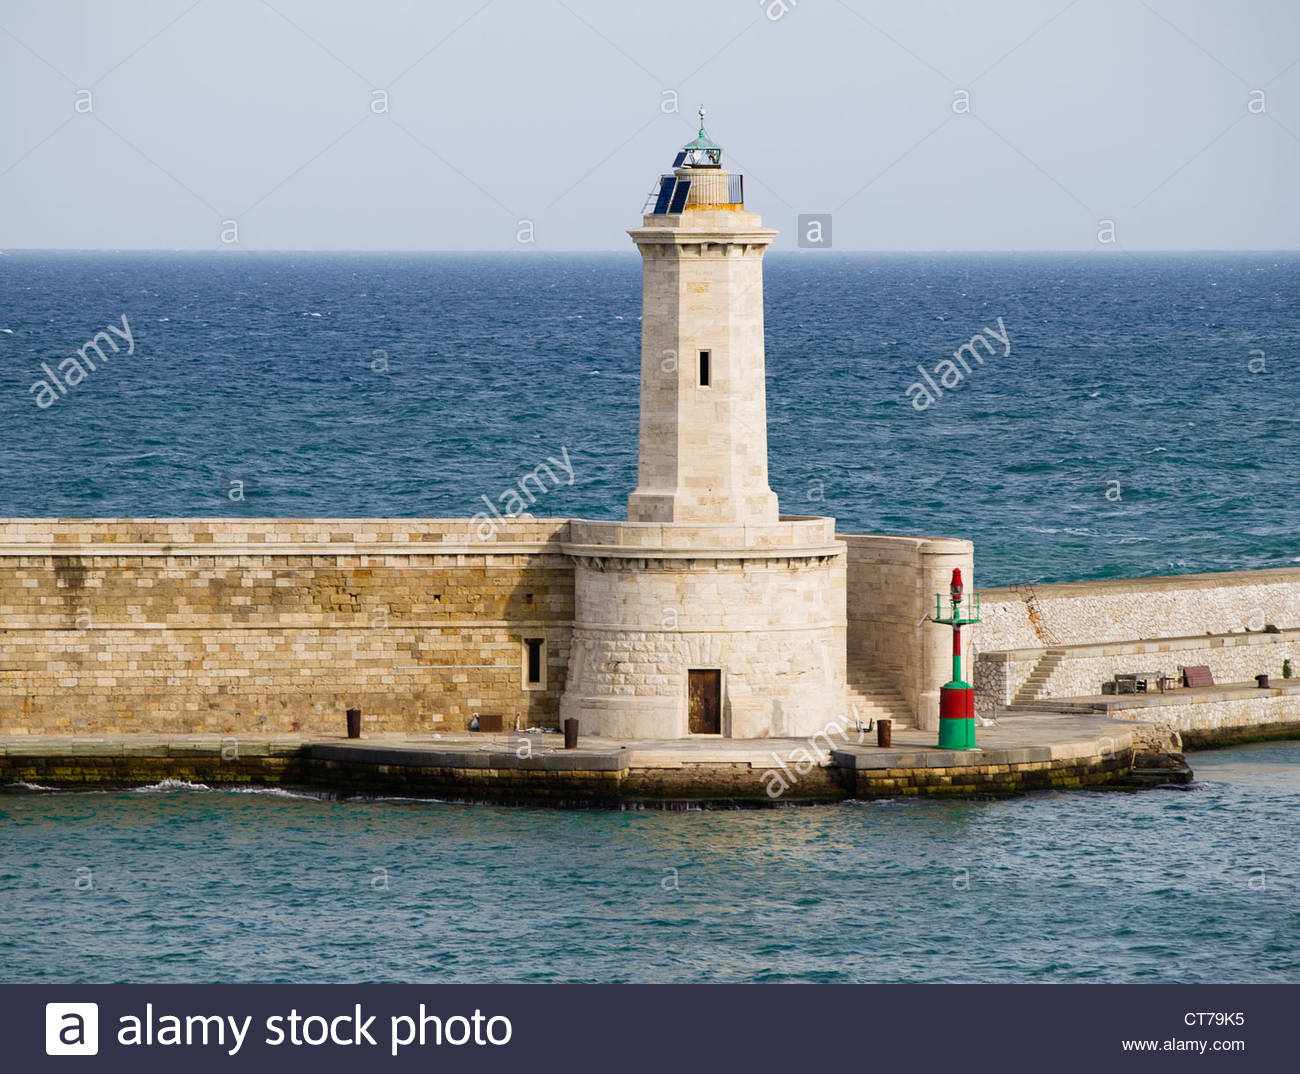 A lighthouse in a windy morning - Stock Image